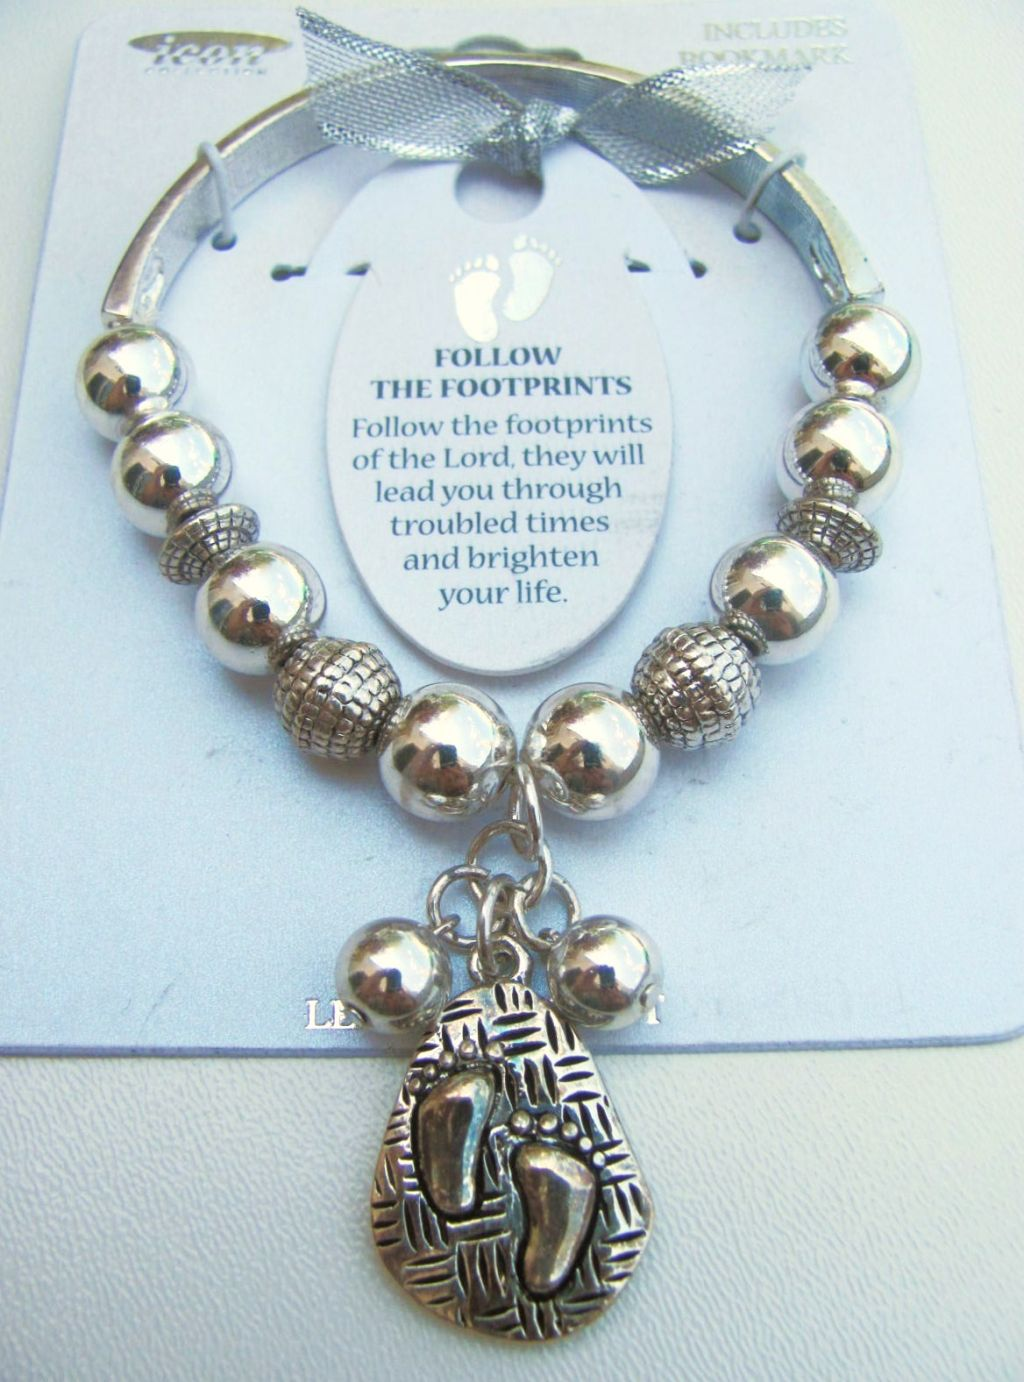 Follow The Footprints Charm Inspirational Message Bracelet, Silver Tone